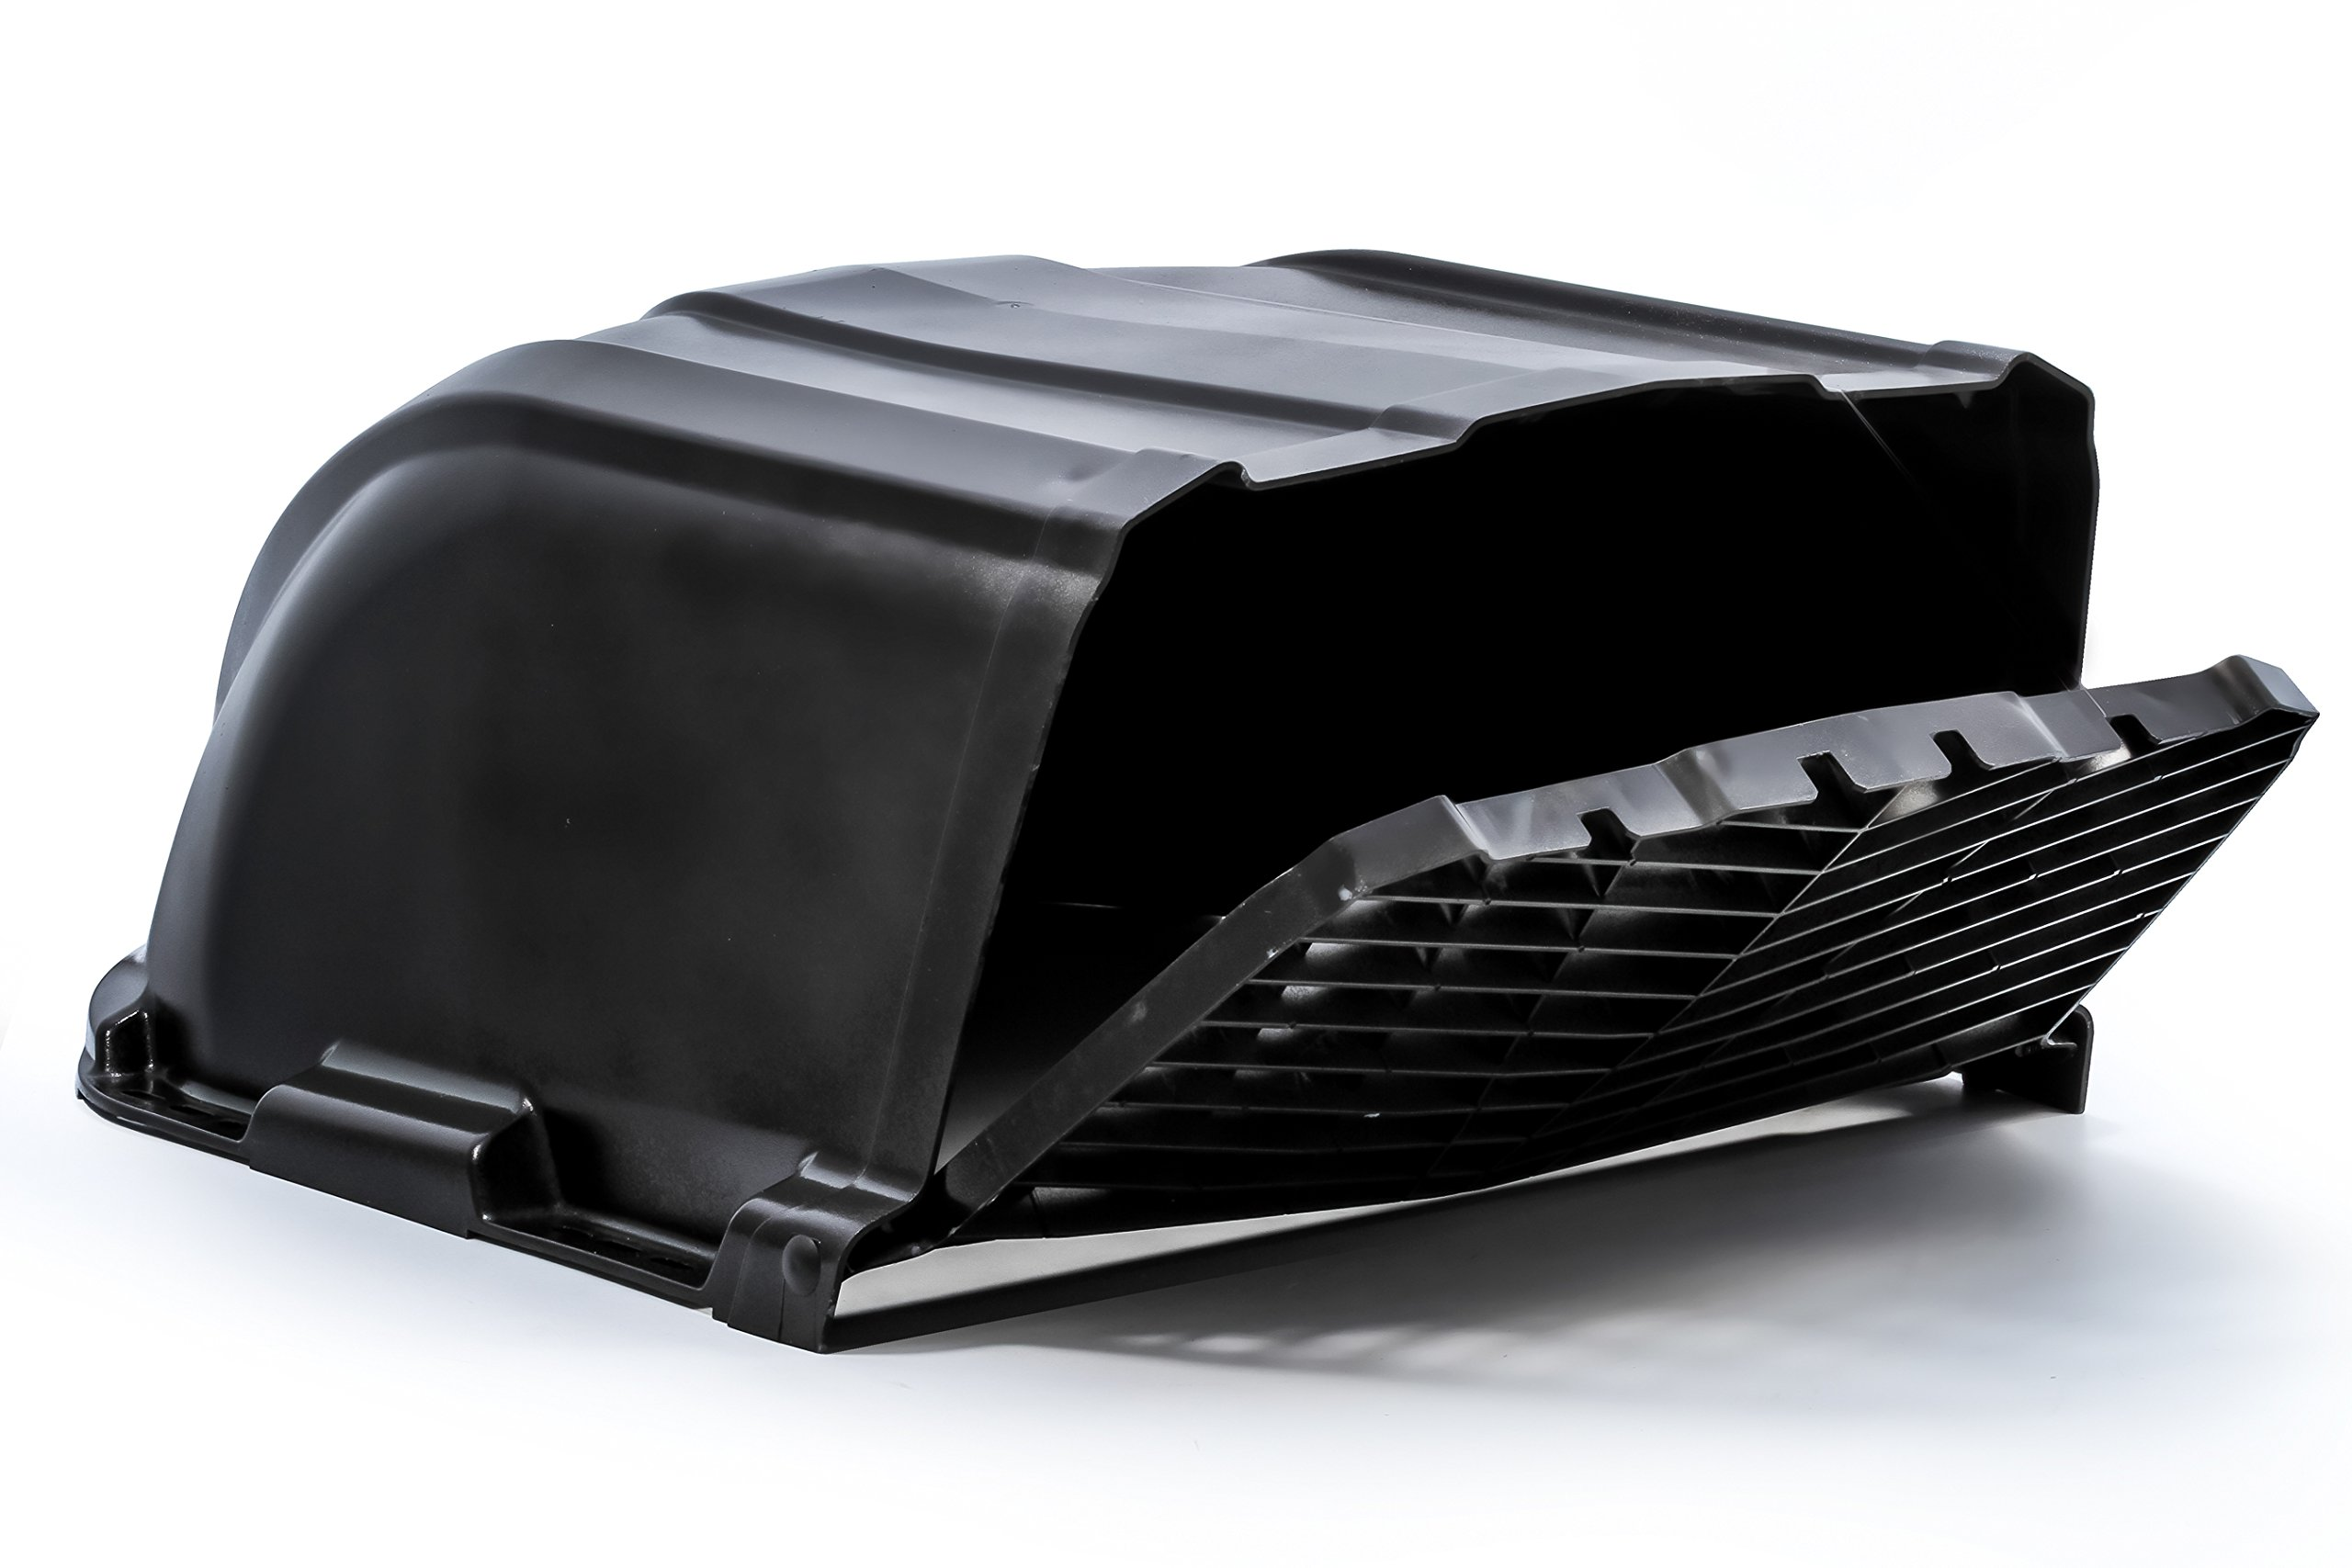 Camco Black XLT High Flow Roof Vent Cover, Opens for Easy Cleaning, Aerodynamic Design, Easily Mounts to RV with Included Hardware (40456) by Camco